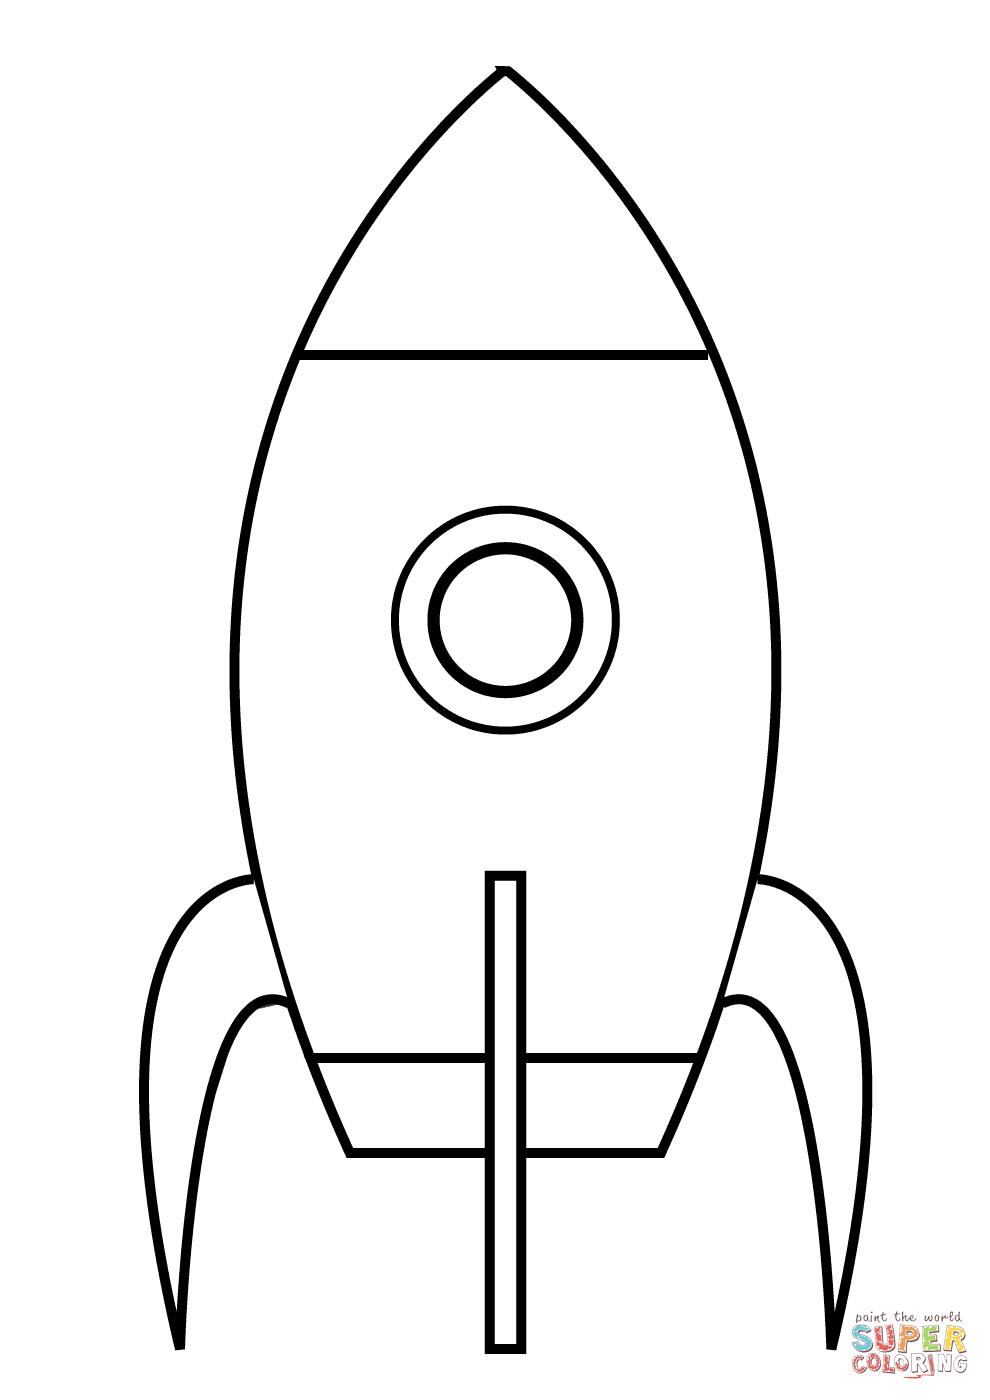 Very Simple Rocket | Super Coloring